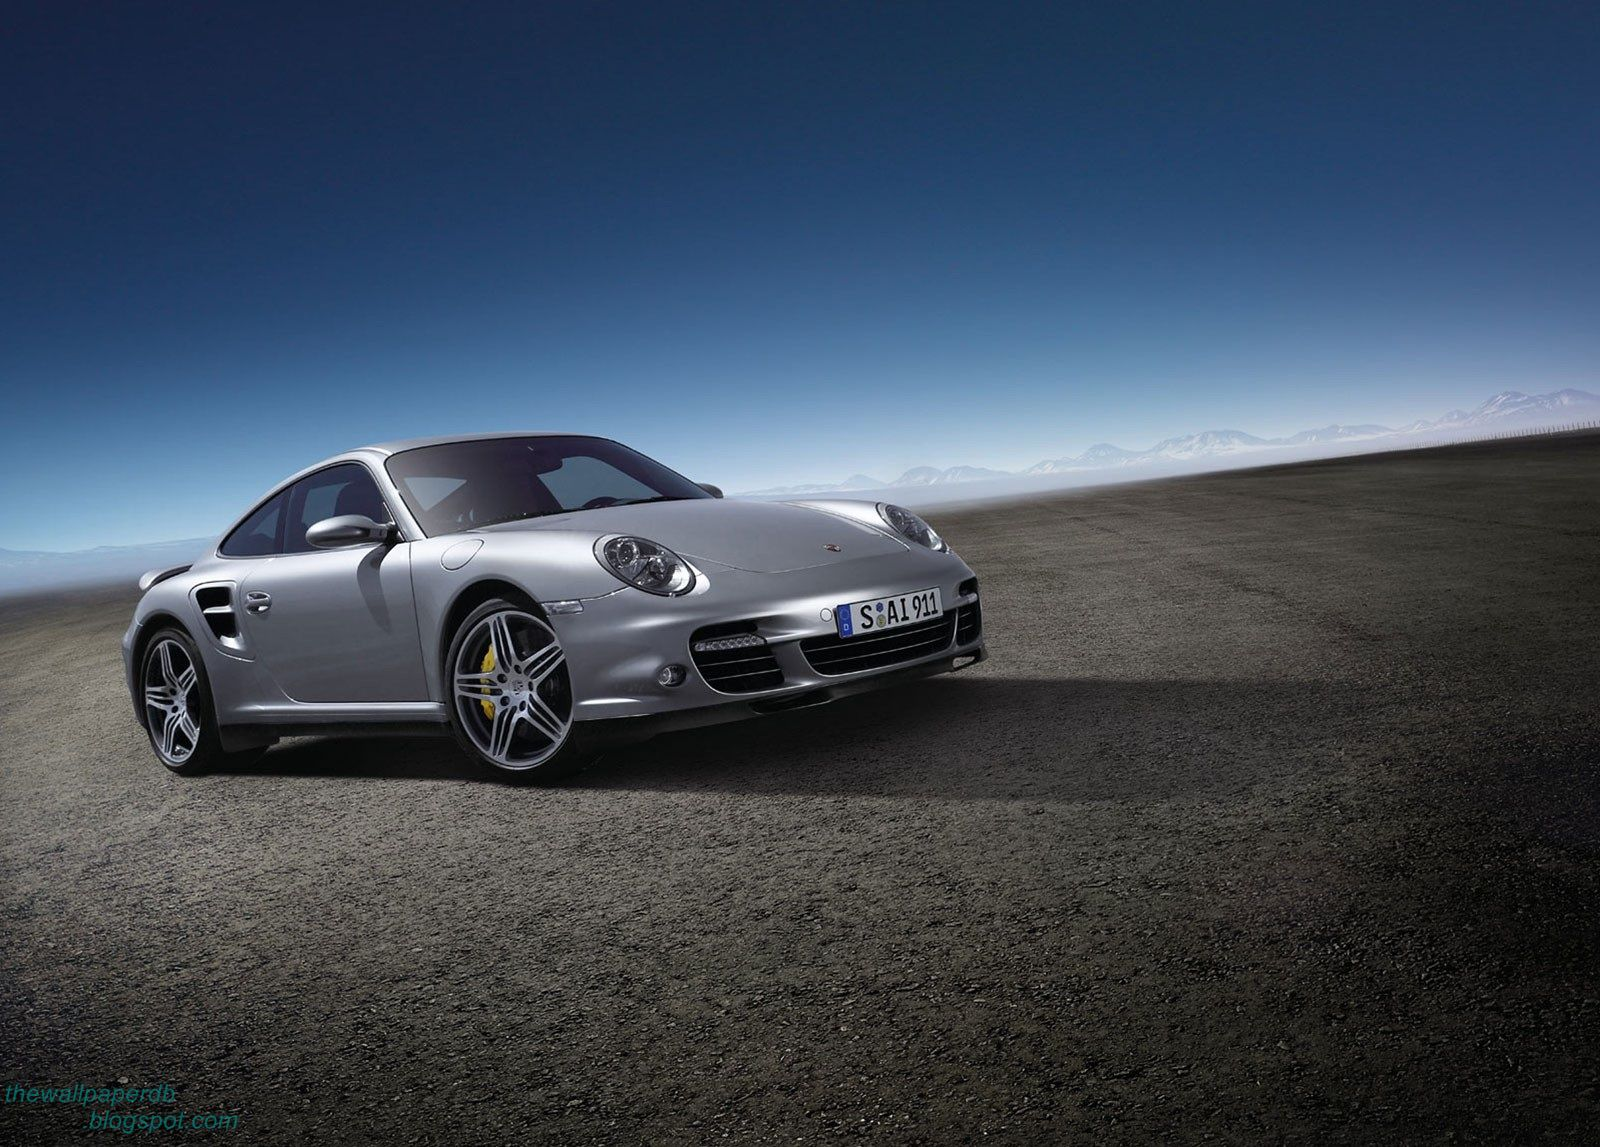 Gears HD New Supercar From Porsche 911 Turbo 4s 2012 1600x1147